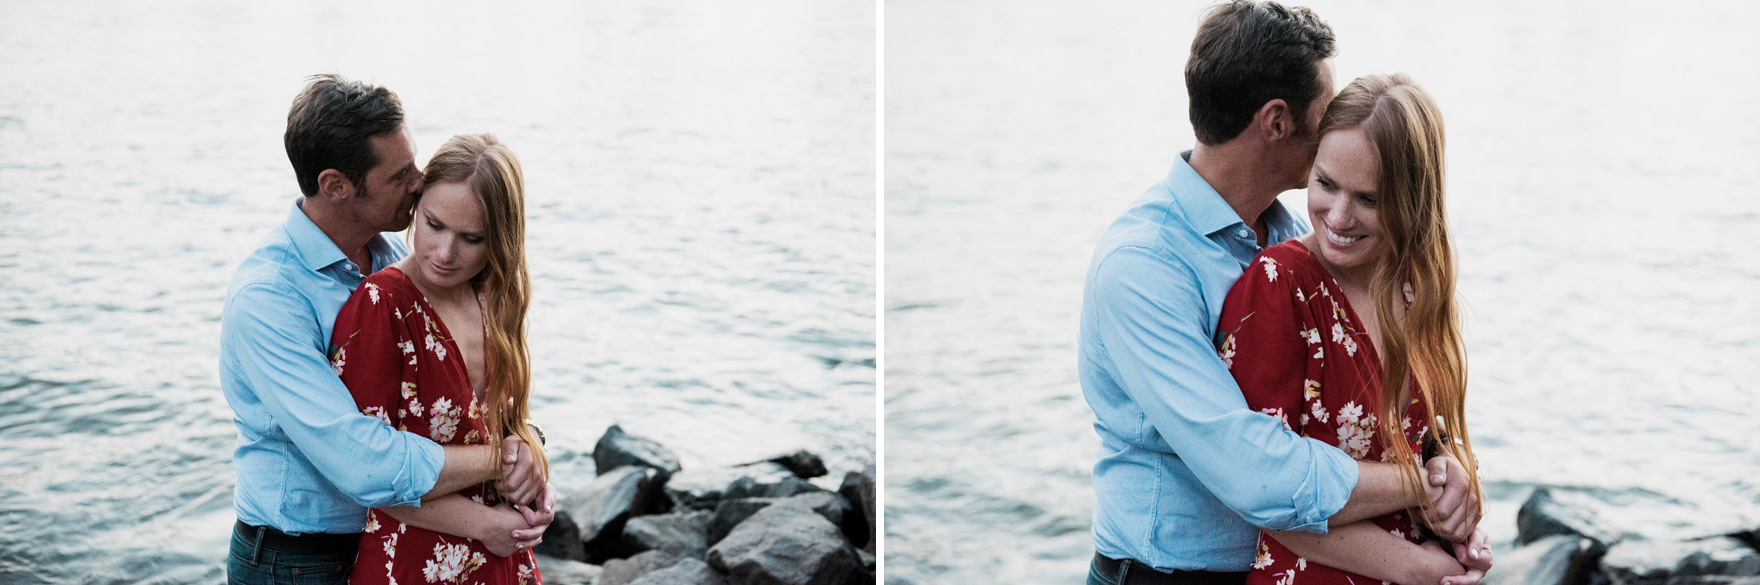 Chris and Erin-Engagement-Photos-NYC-Brooklyn-by Christina Lilly Photography0036